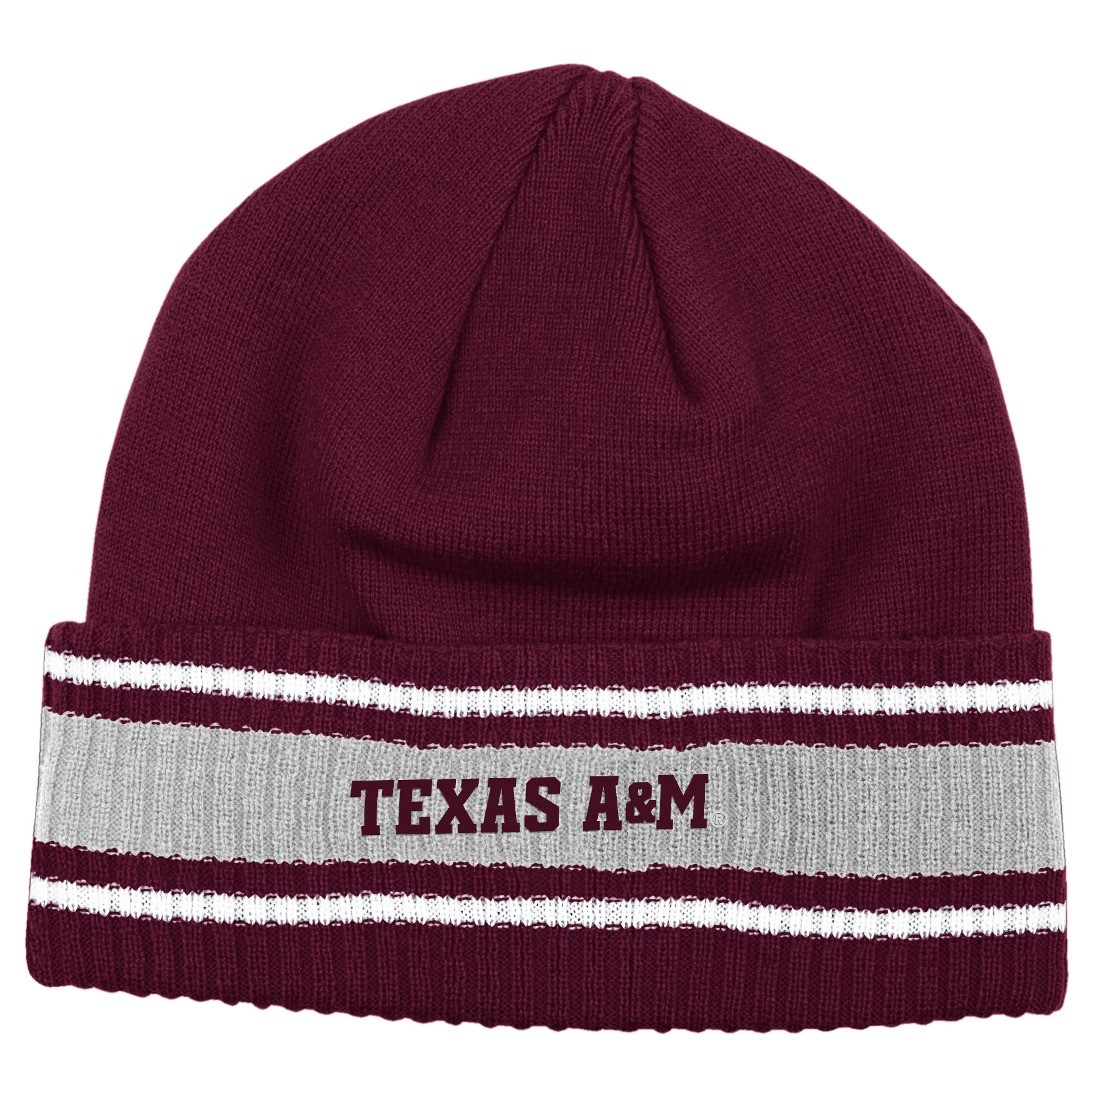 huge discount 810be 54a96 Details about Texas A M Aggies Adidas 2014 NCAA Coach s Sideline Cuffed  Knit Hat